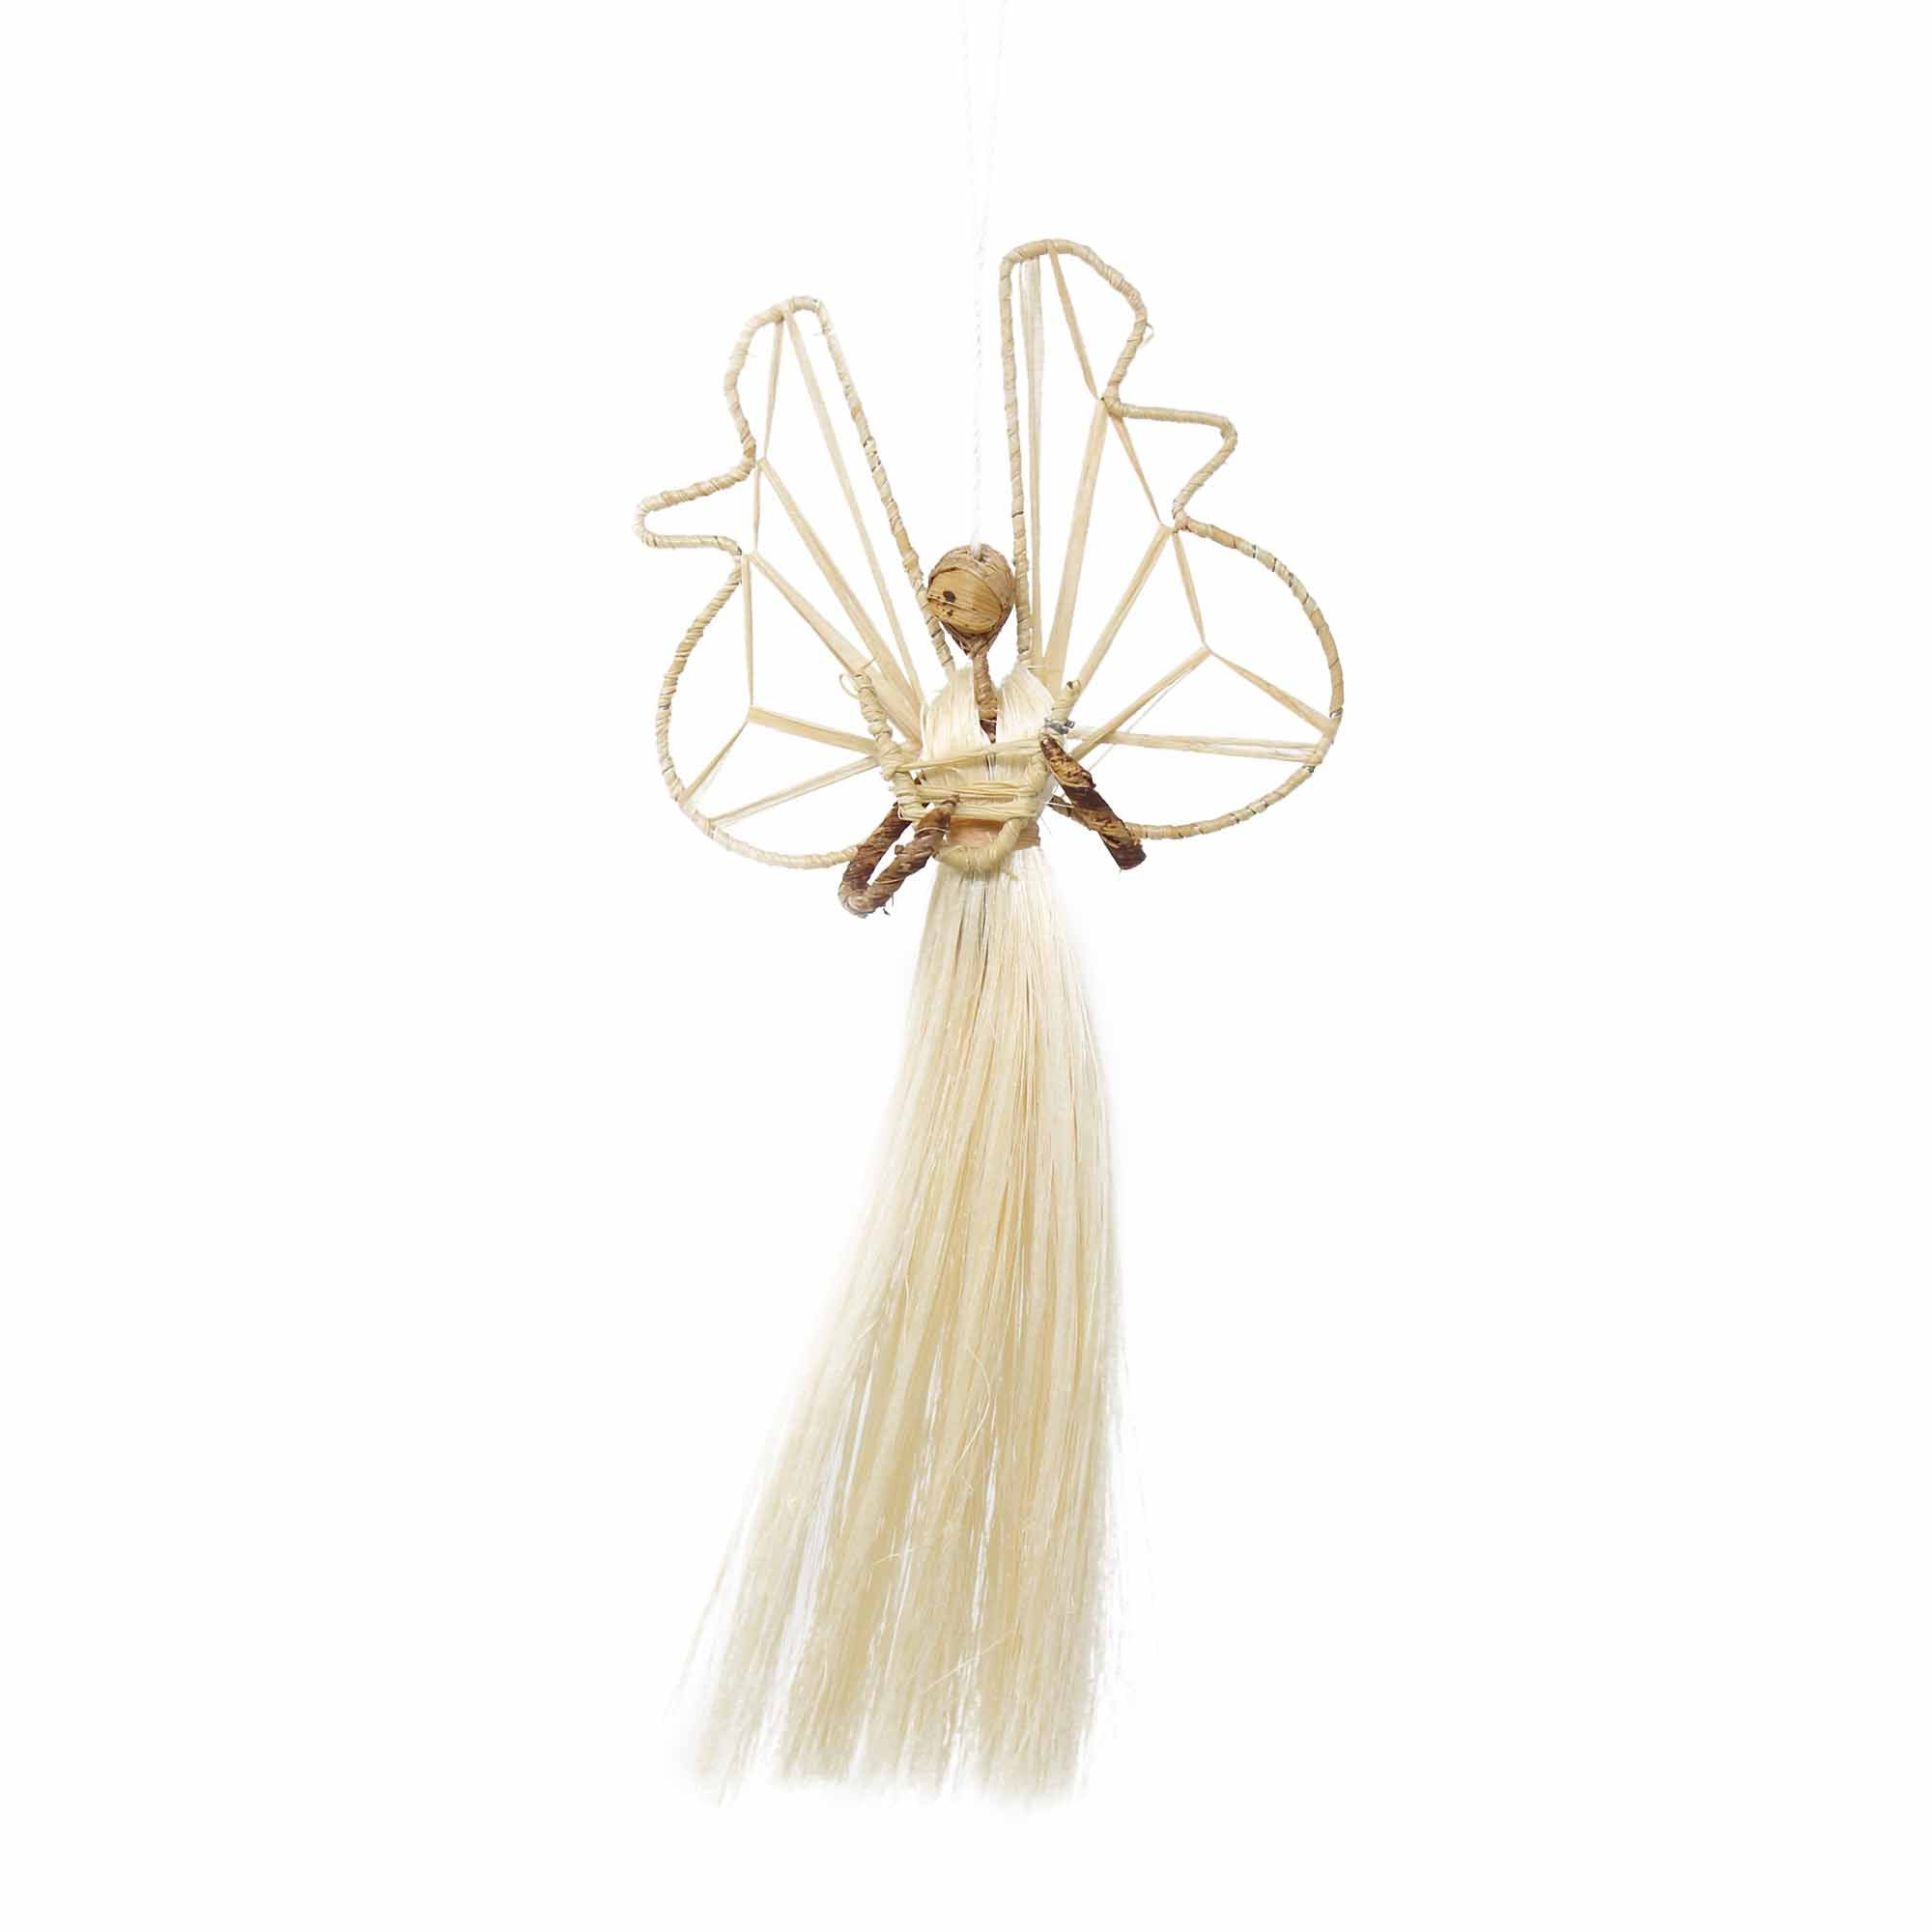 9 Inch Sisal Angel Ornament, Harp